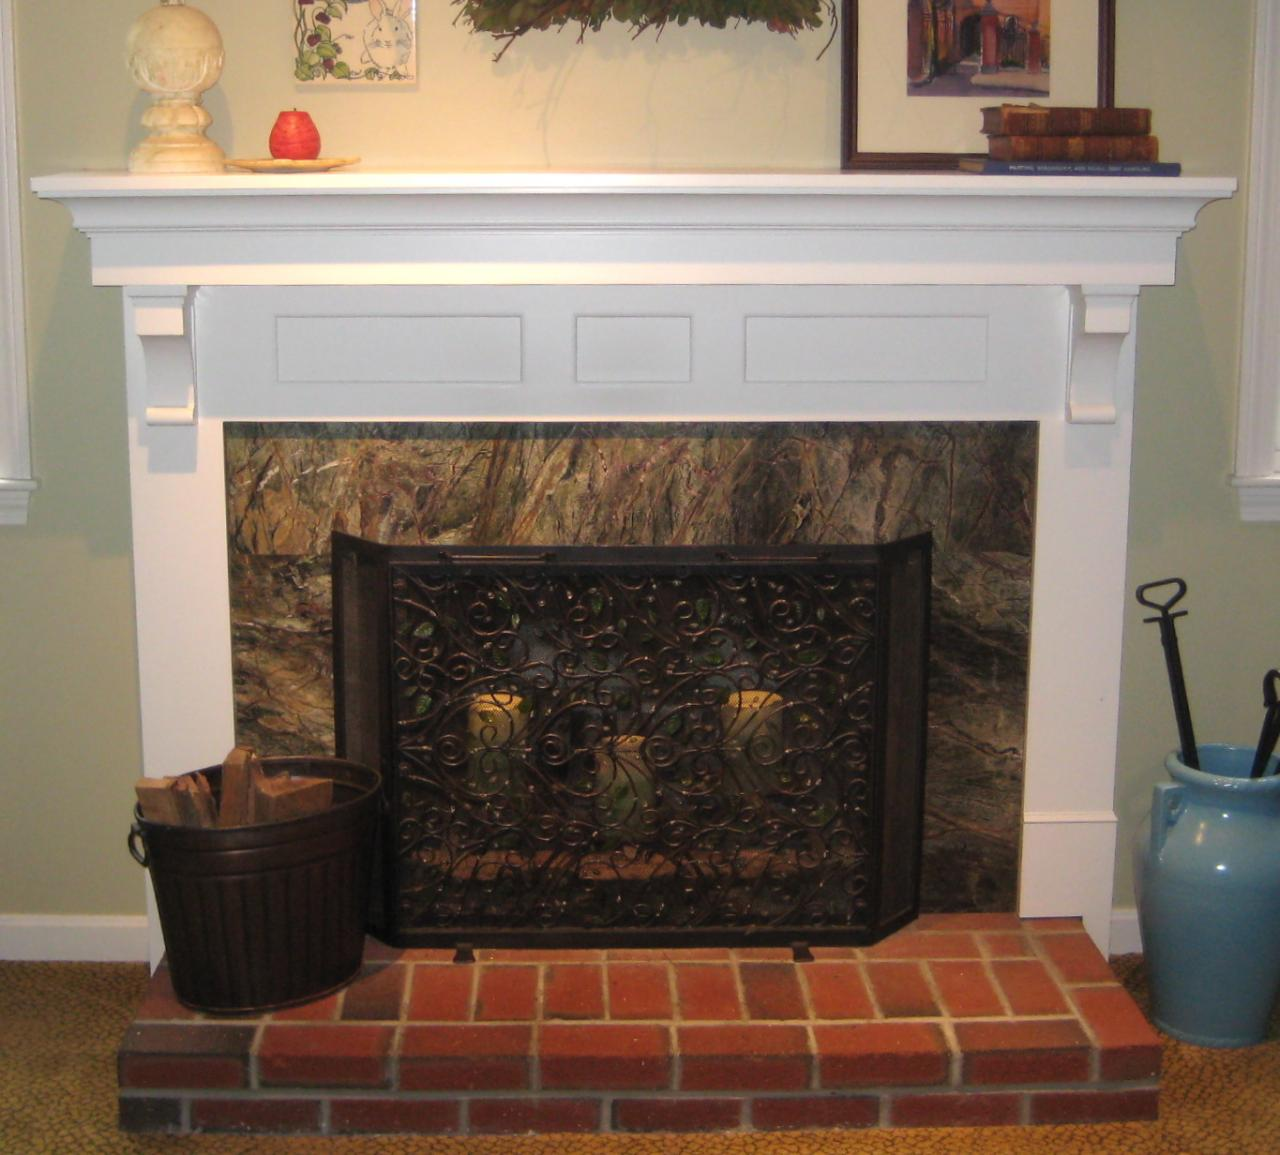 Shelving for the home pinterest built in shelves drywall and fire places - Brick fireplace surrounds ideas ...